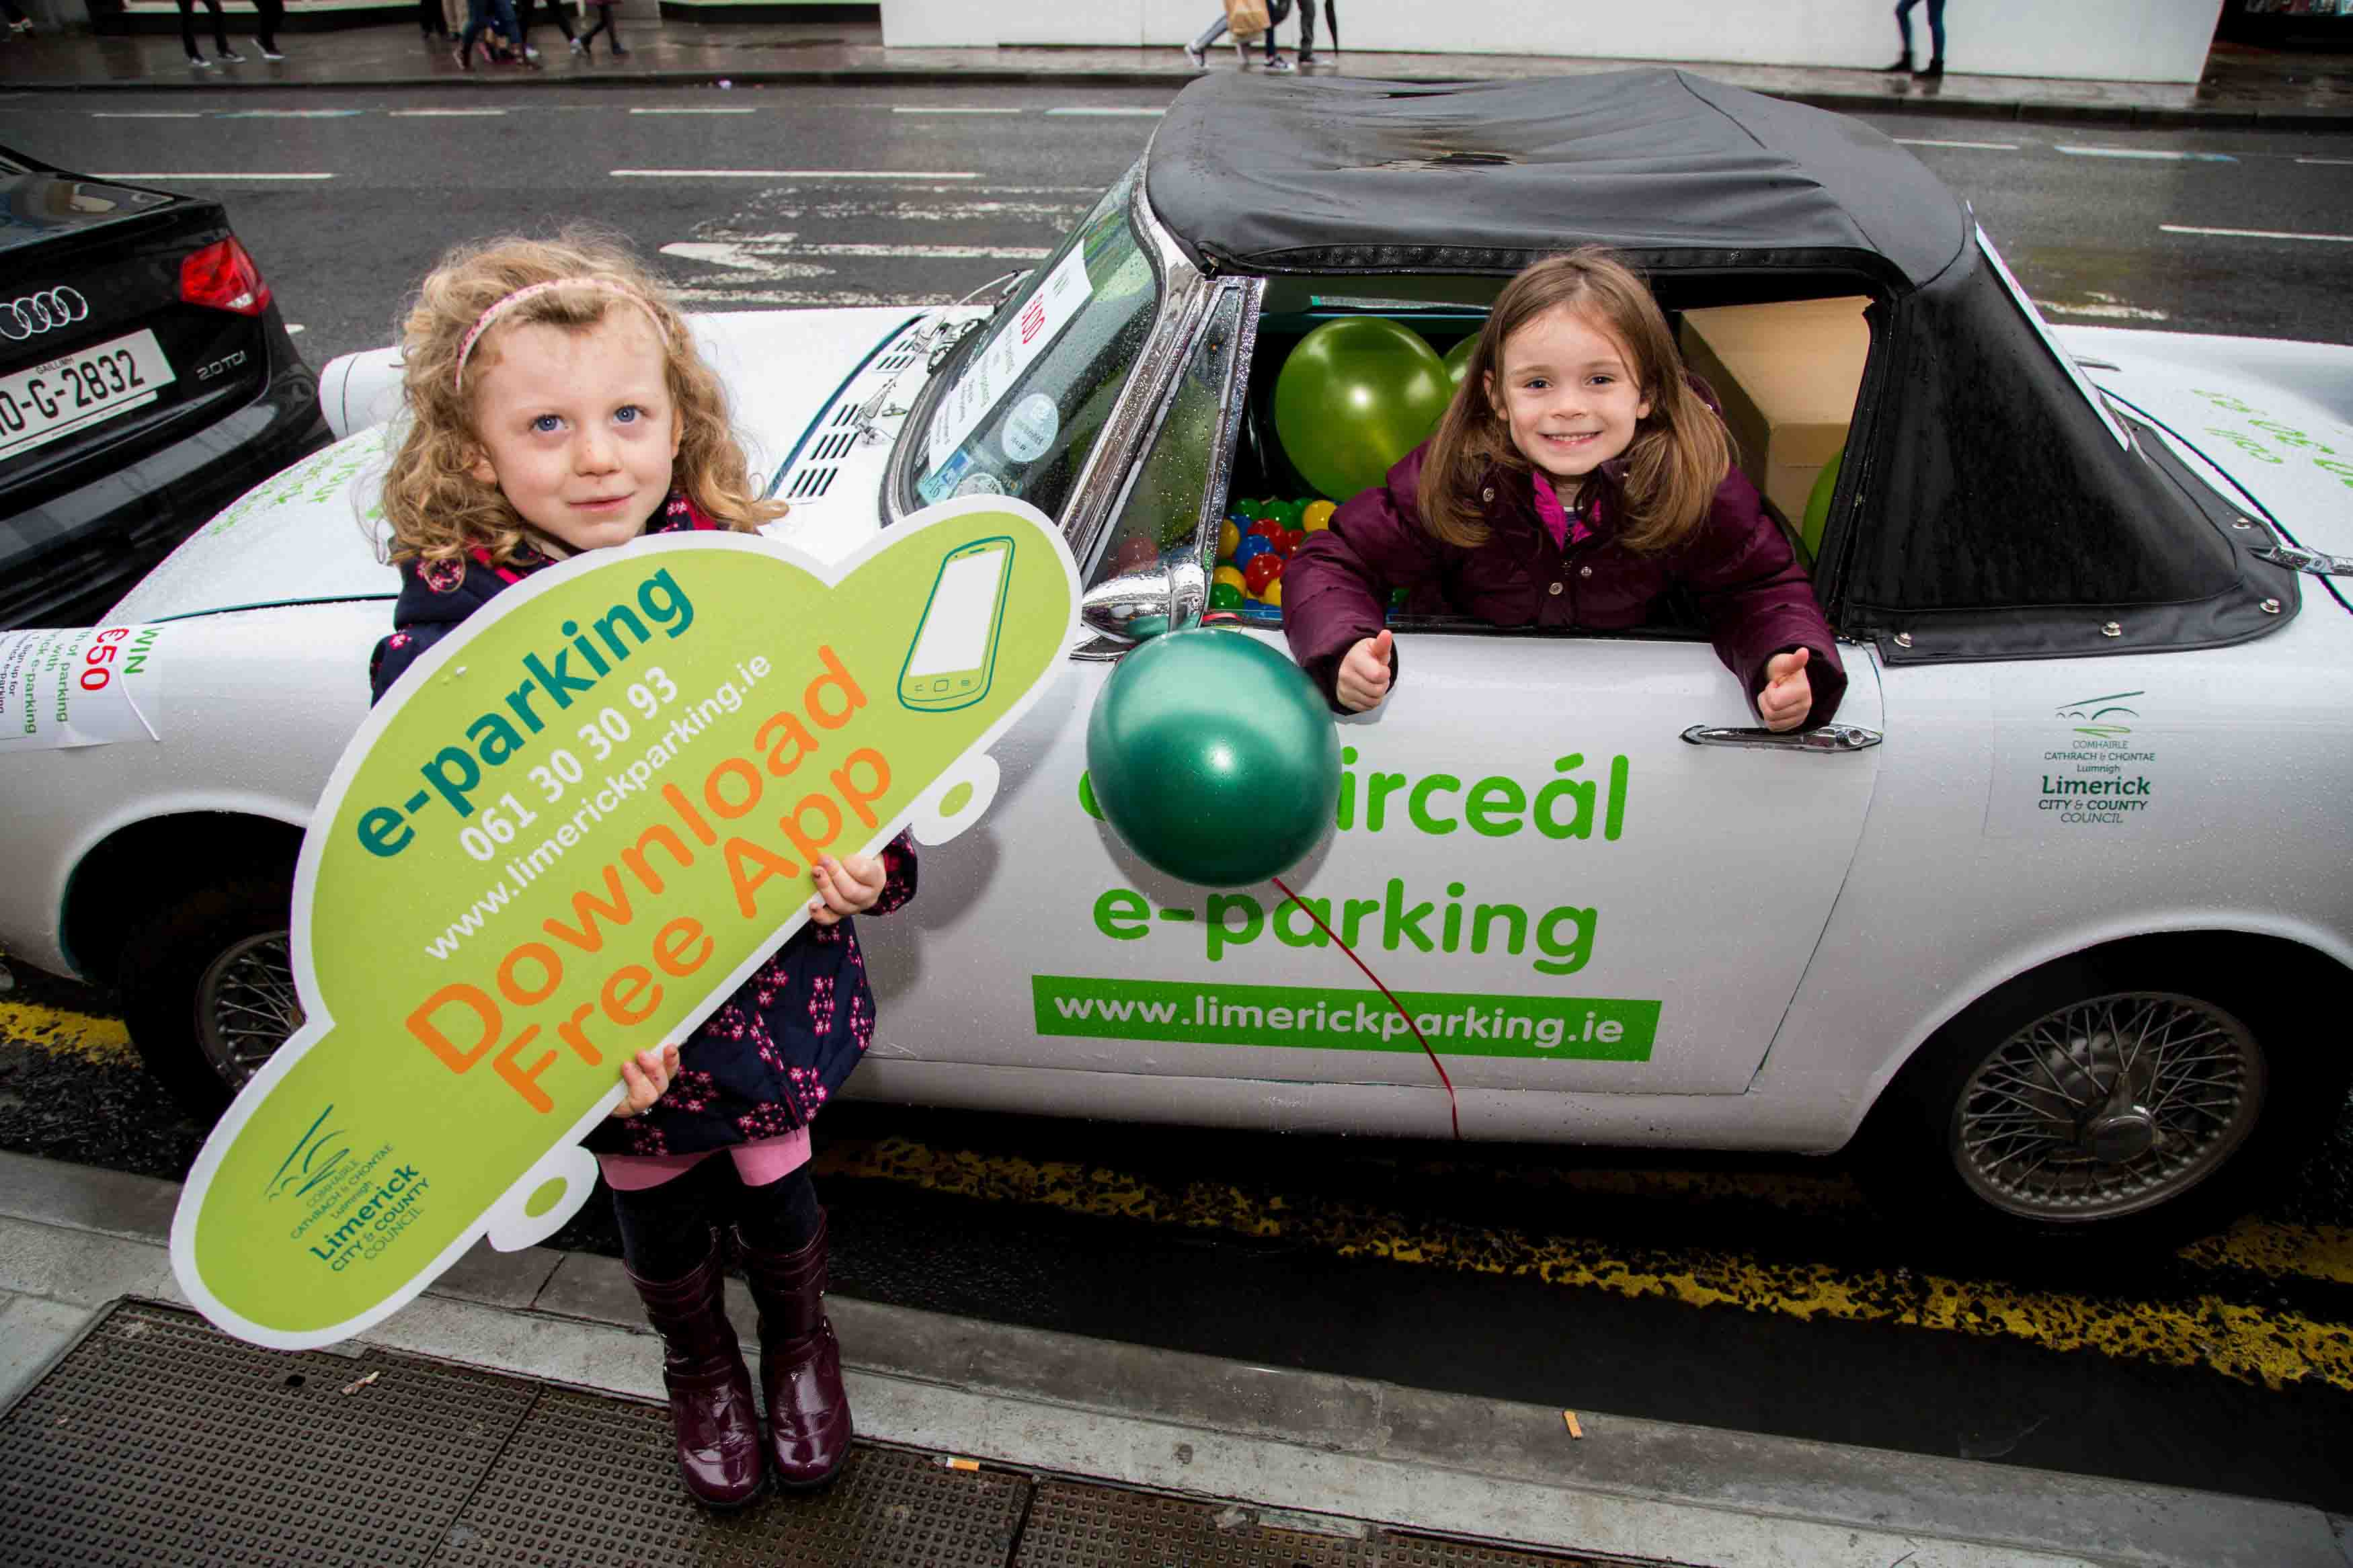 Limerick e-Parking launches in the city